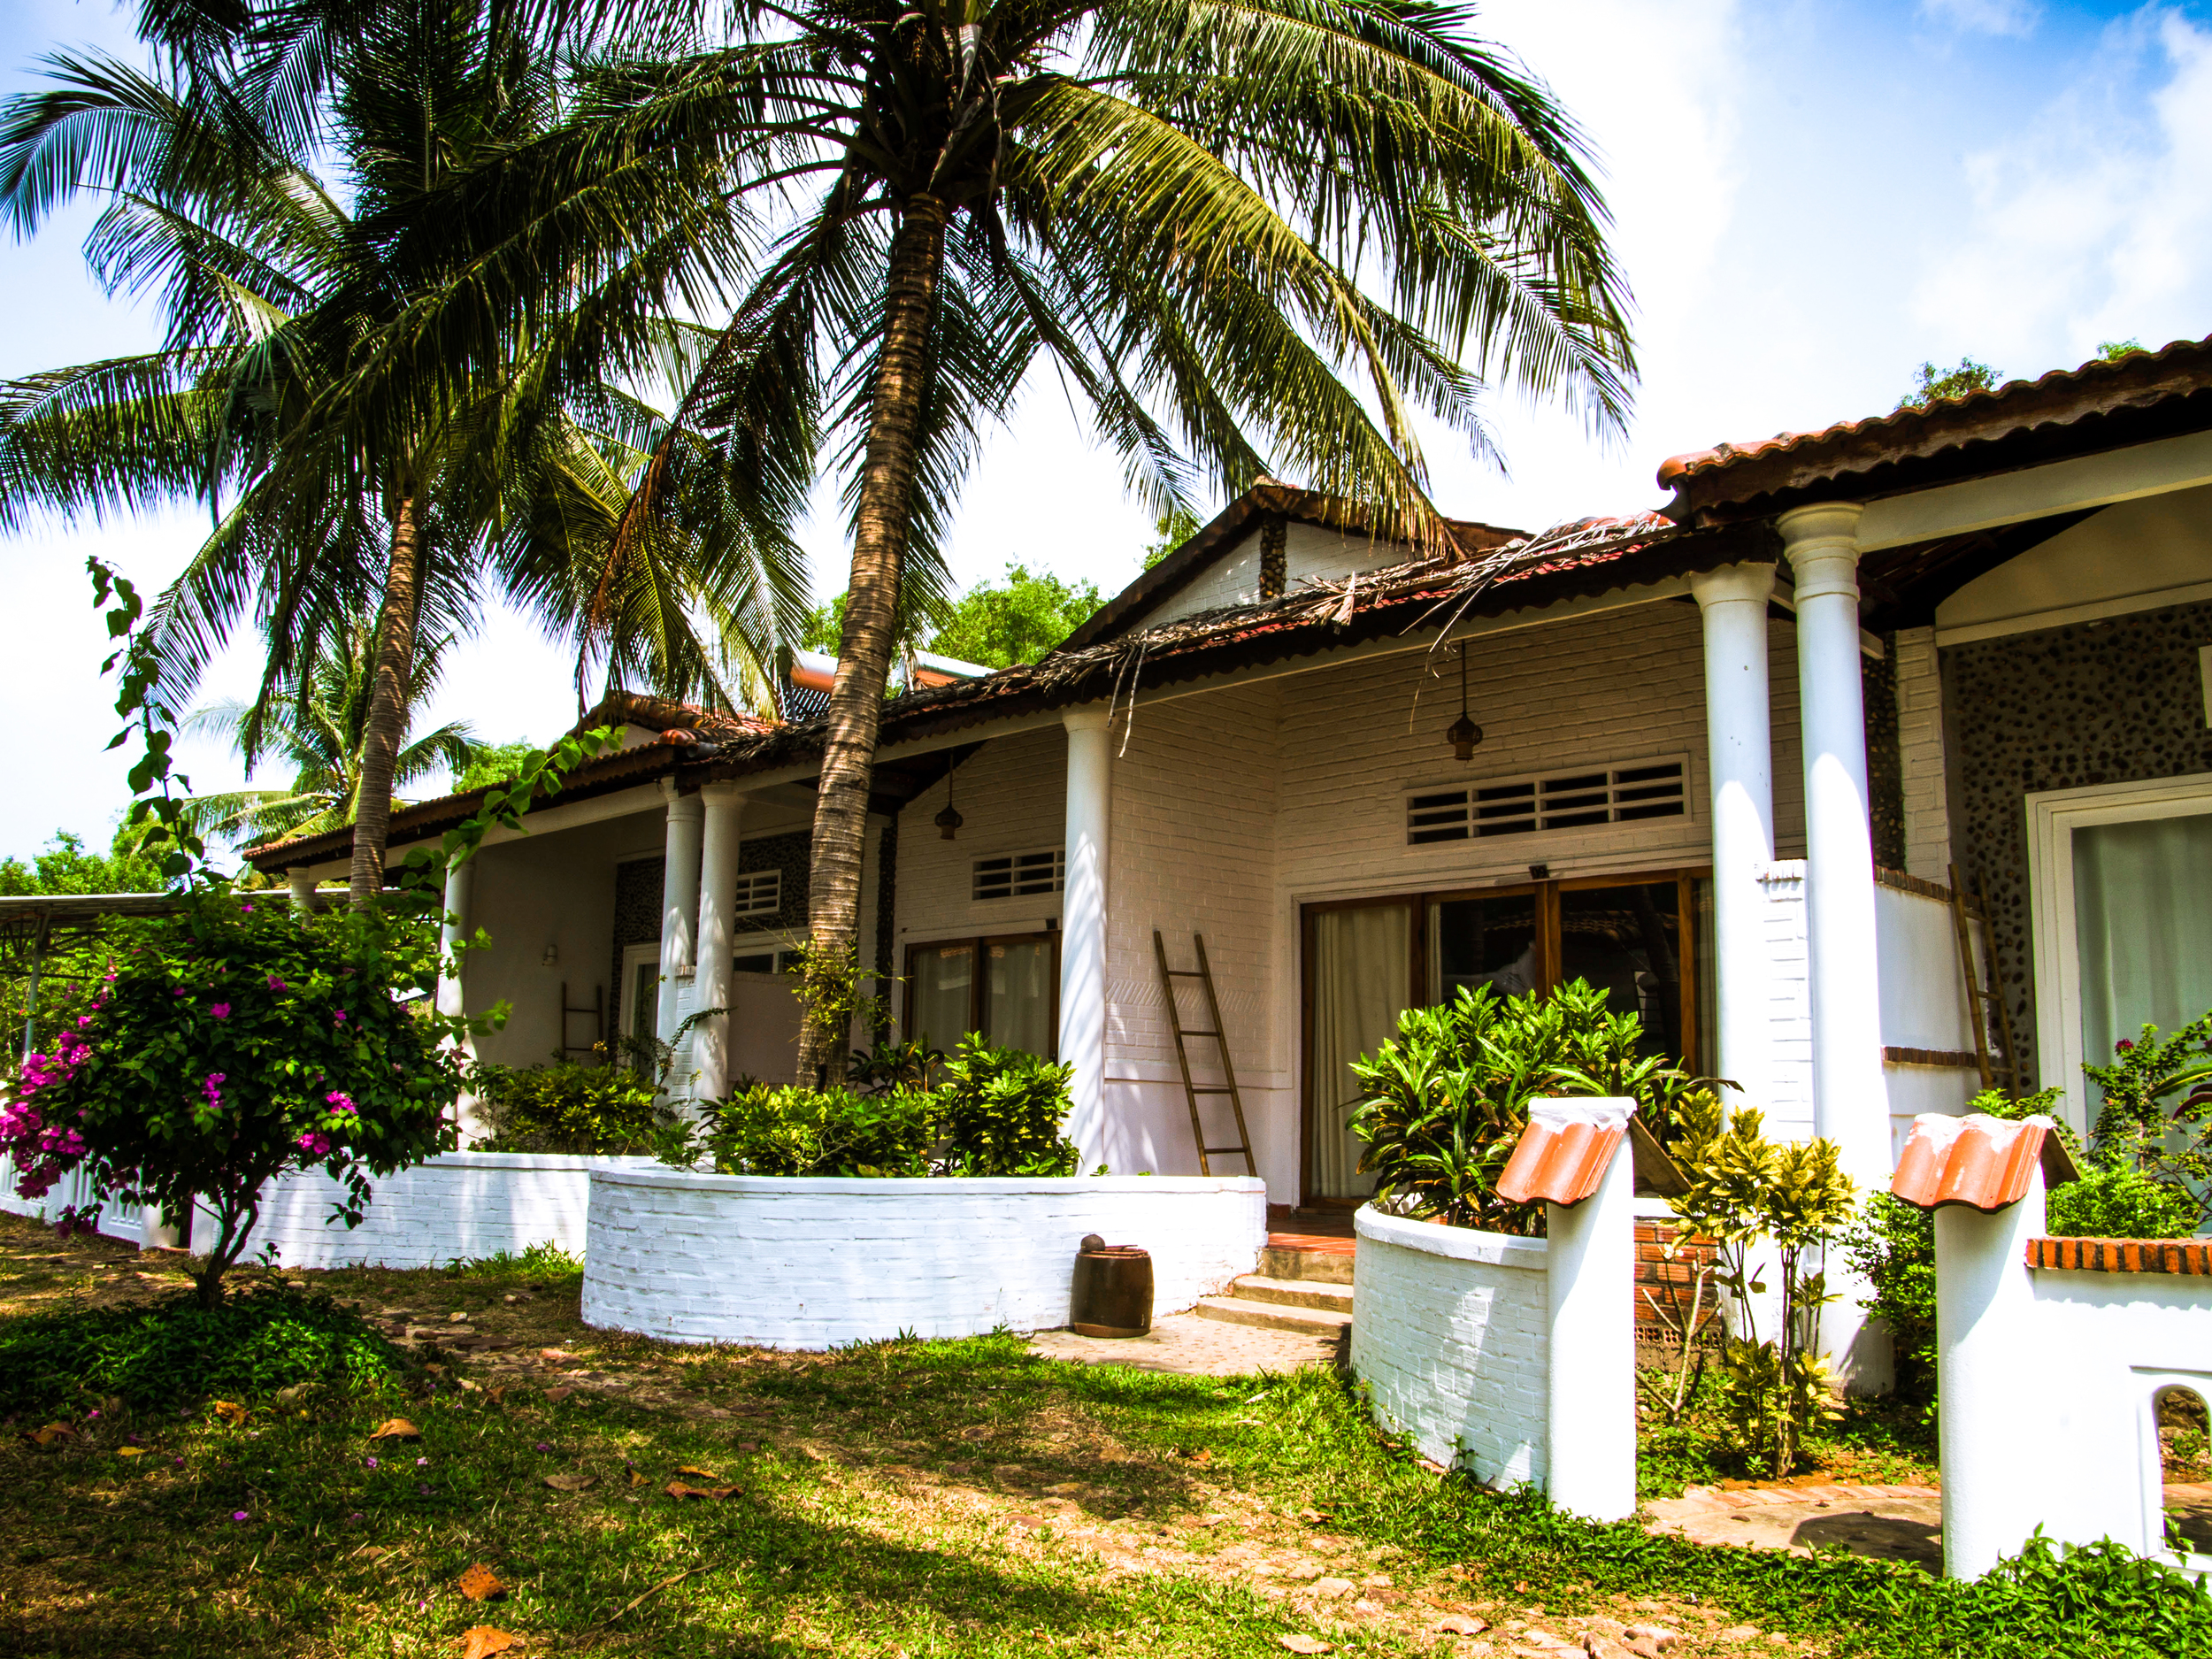 phuo-quoc-bamboo-cottage-28.jpg